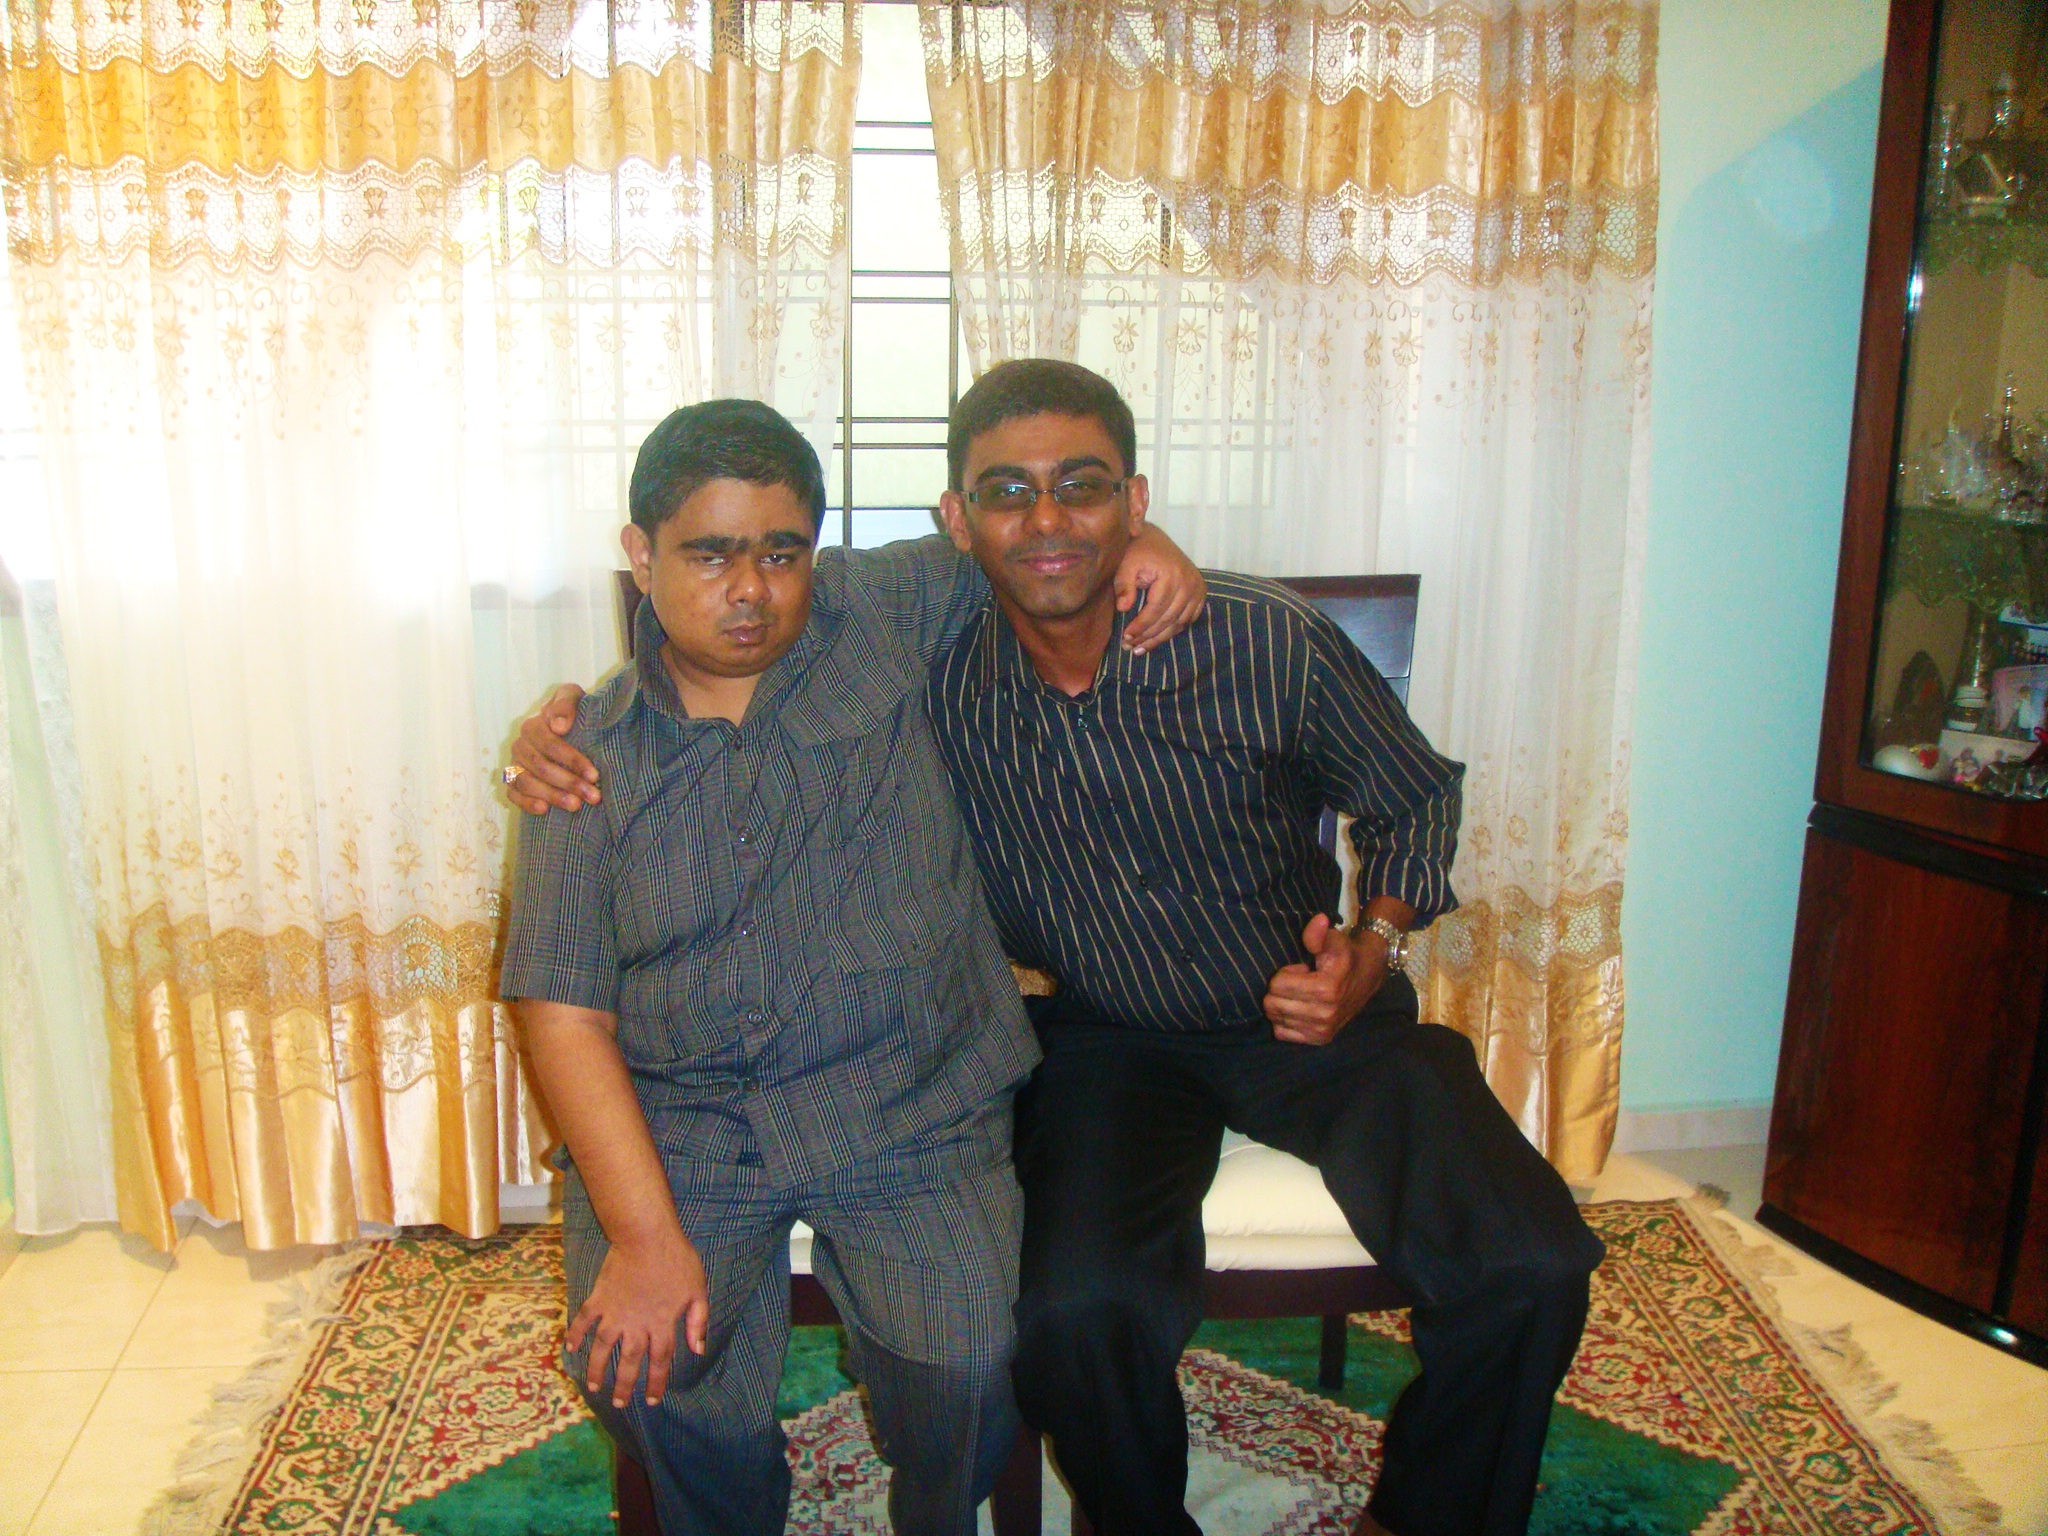 Arifeen and his uncle